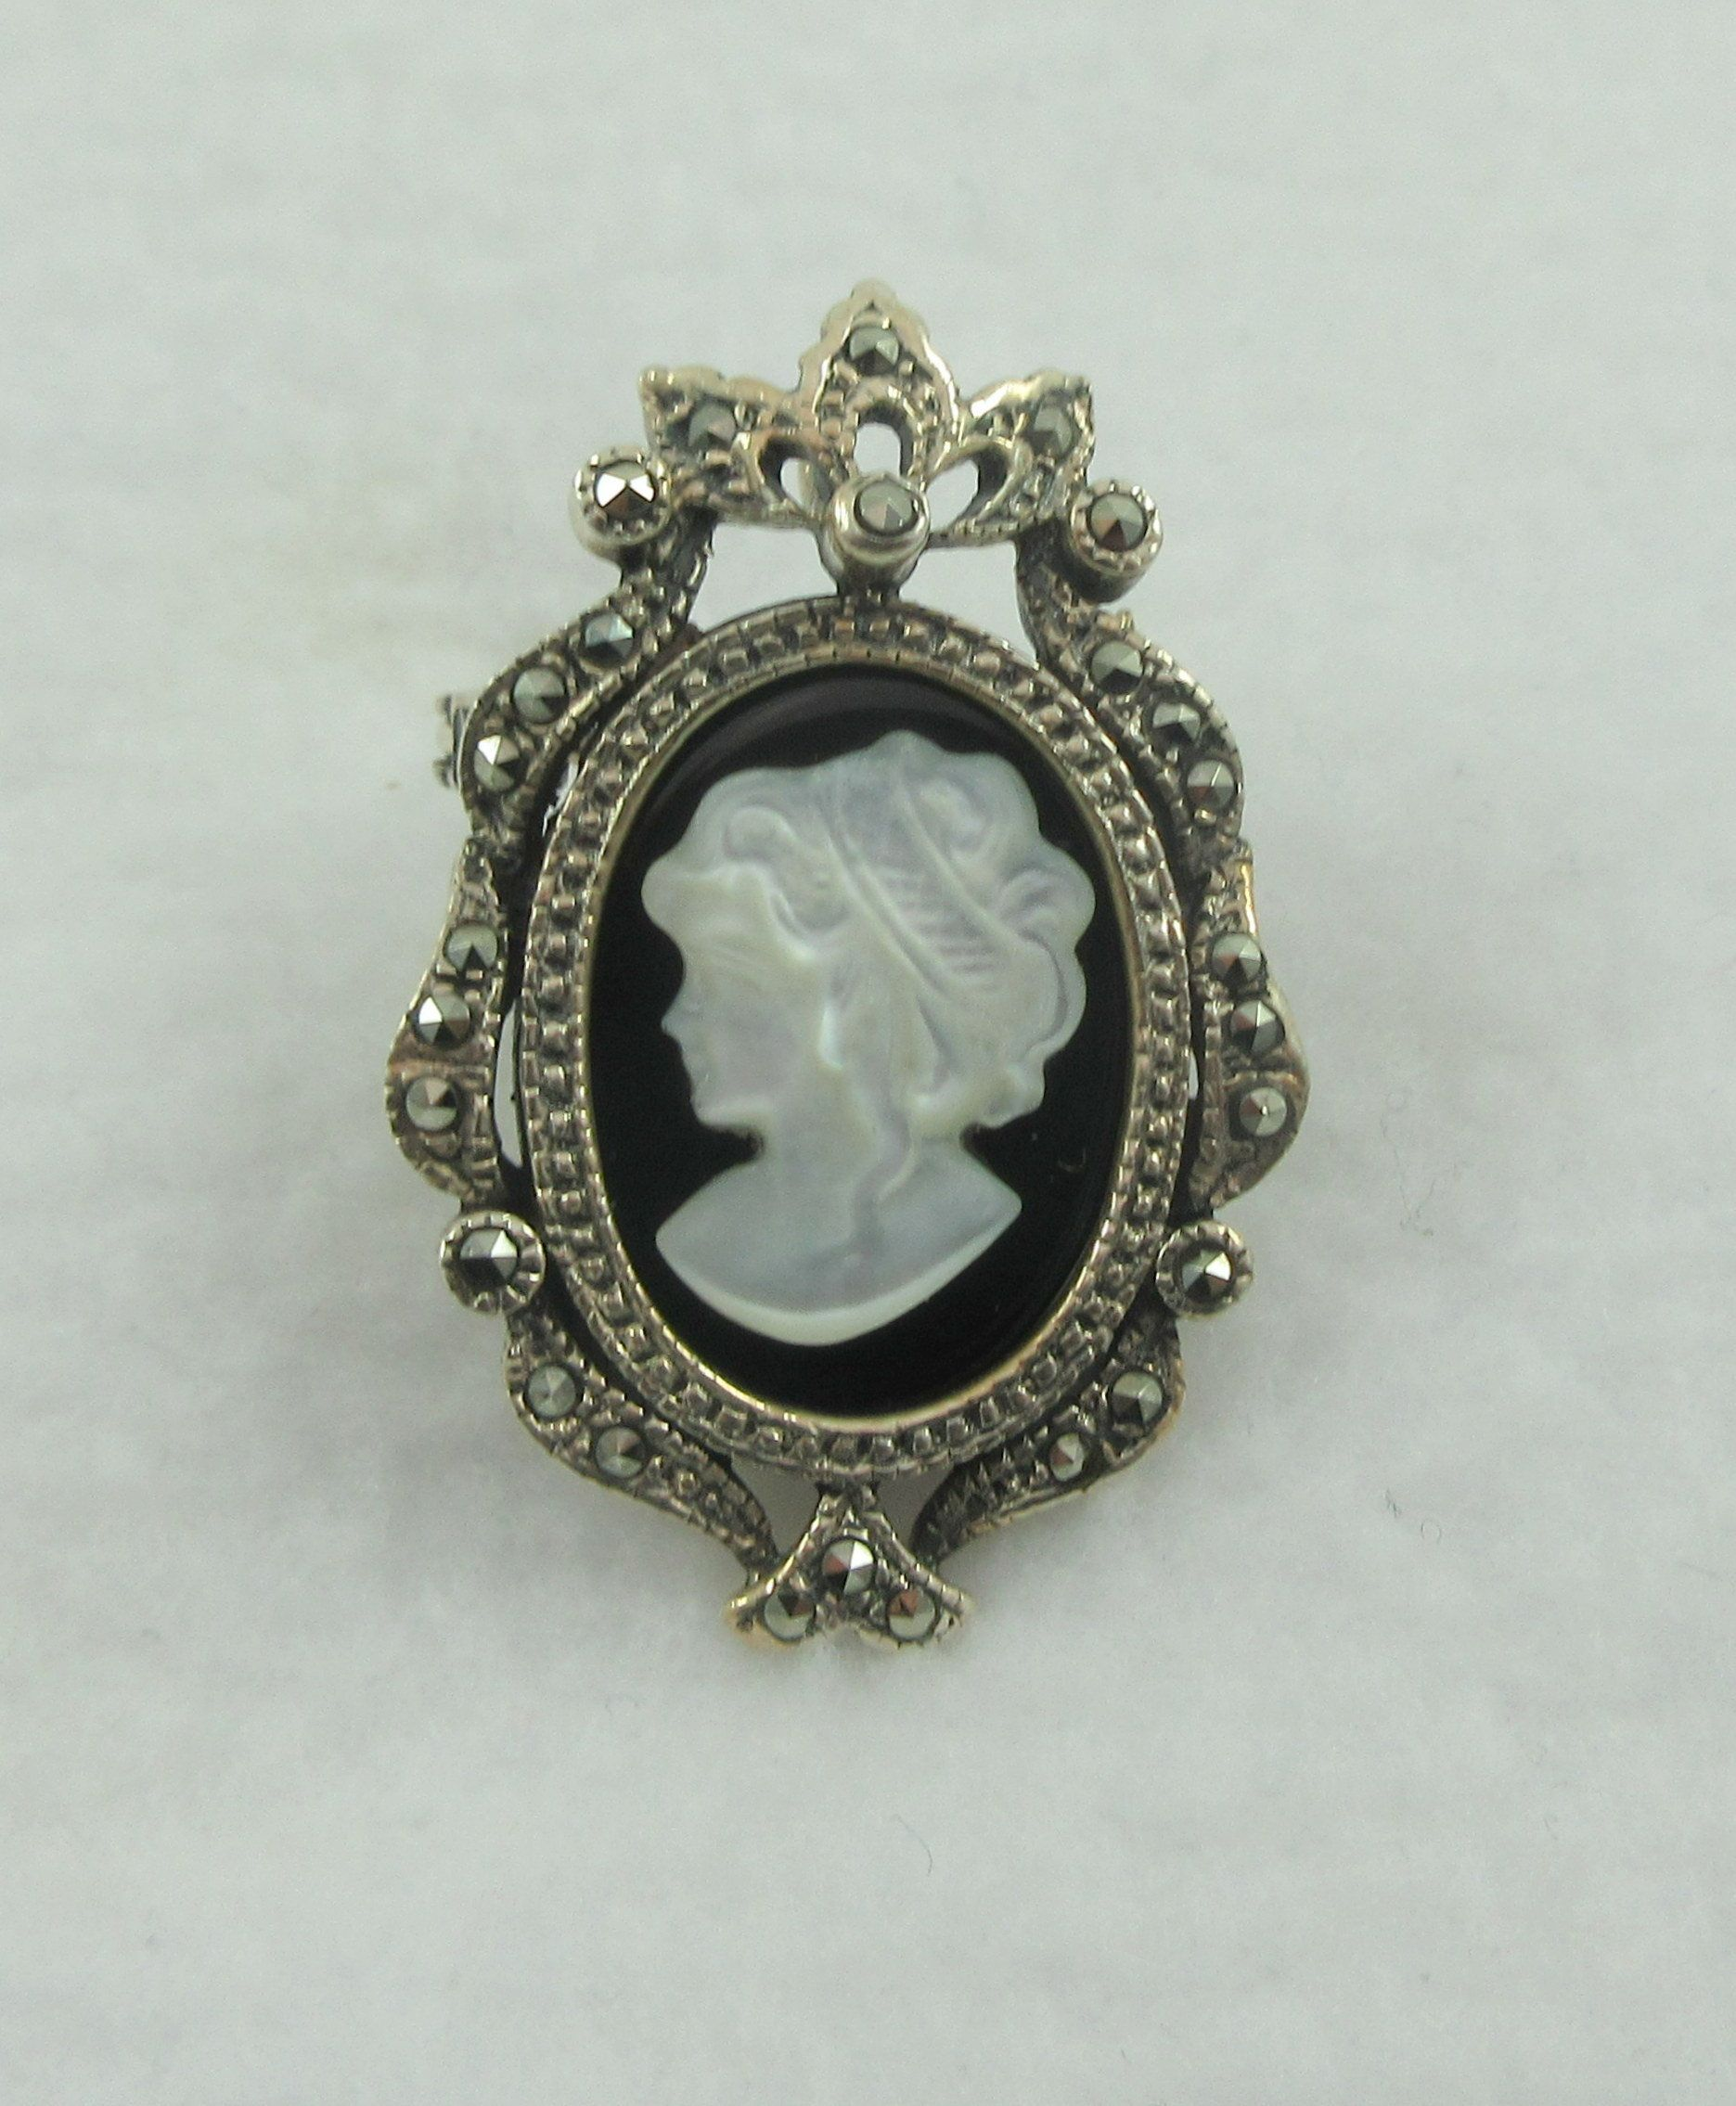 Antique Brooch Cameo Brooch Sterling Silver Marcasite Hand Carved Mother of Pearl Shell Antique Cameo